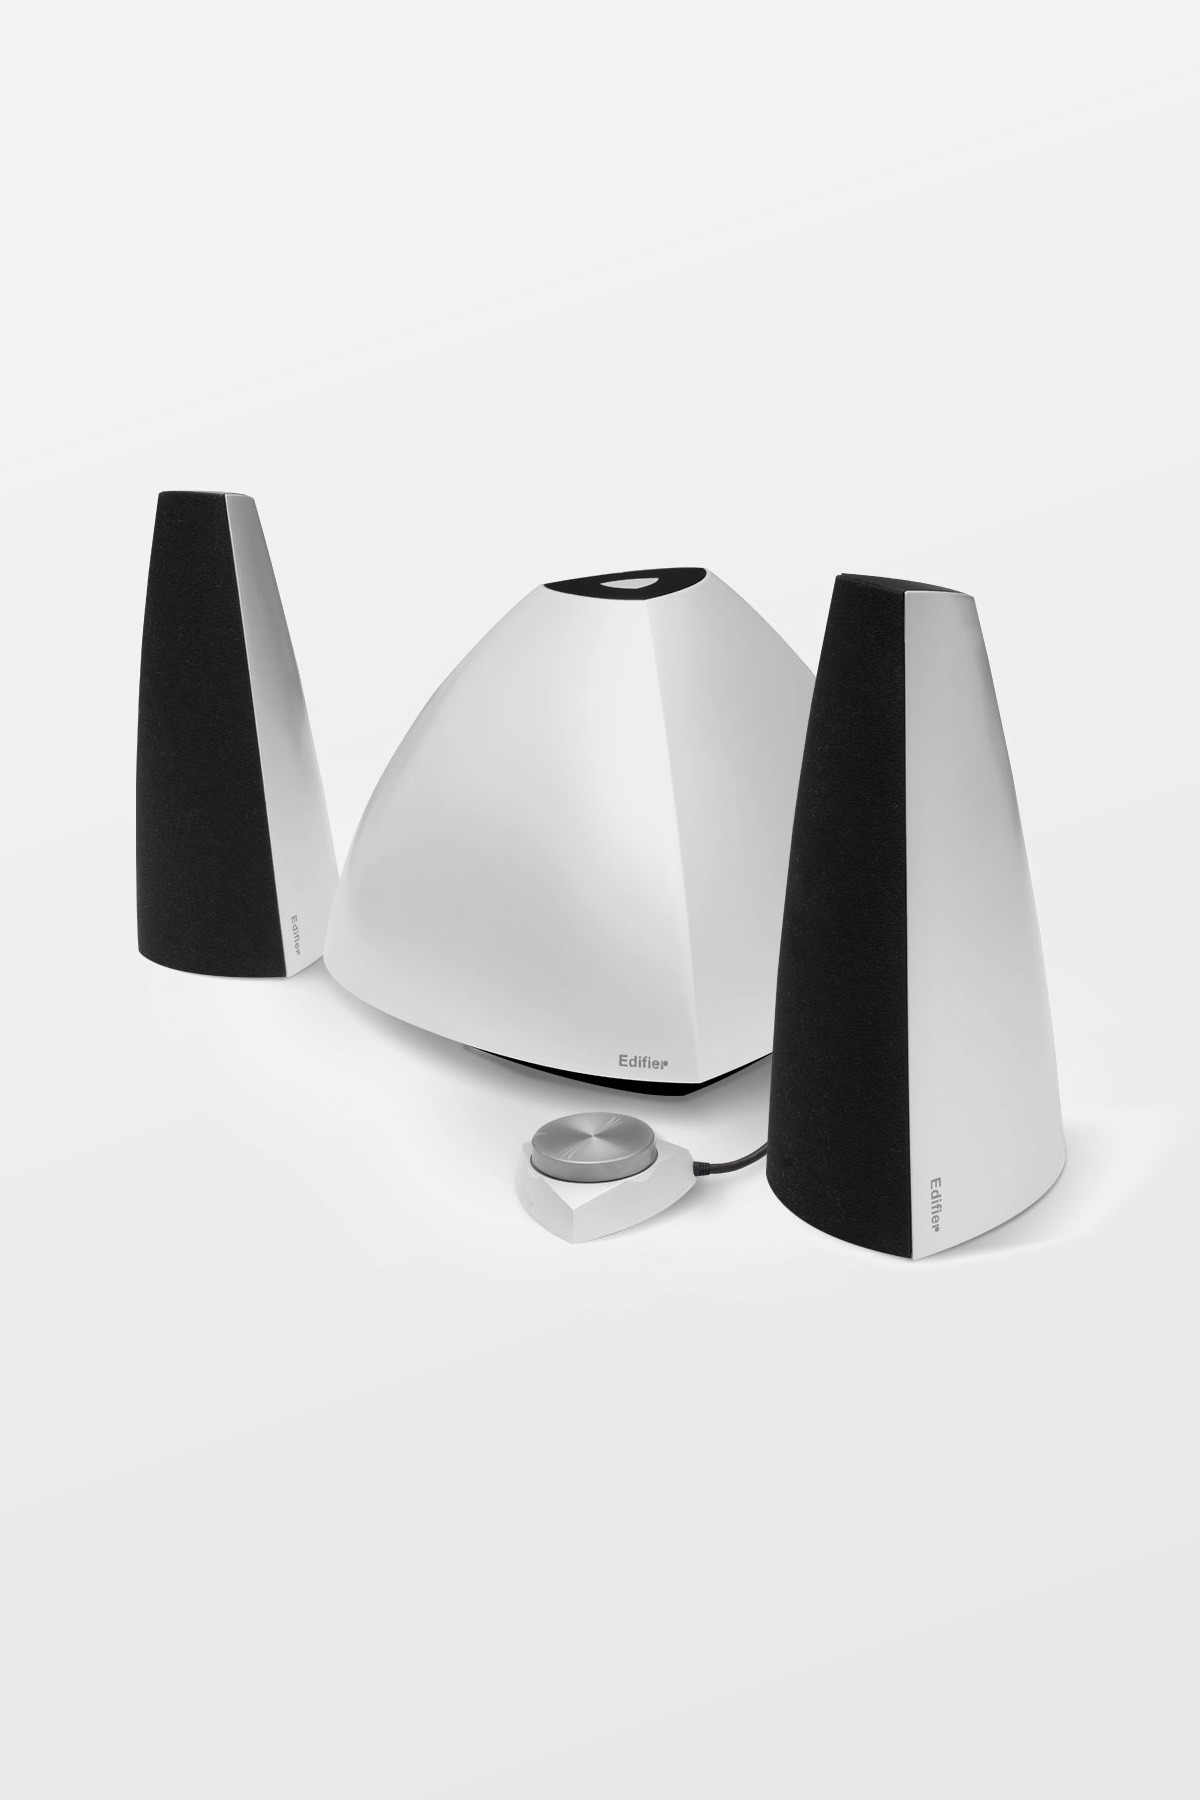 Edifier Prisma Bluetooth Speakers